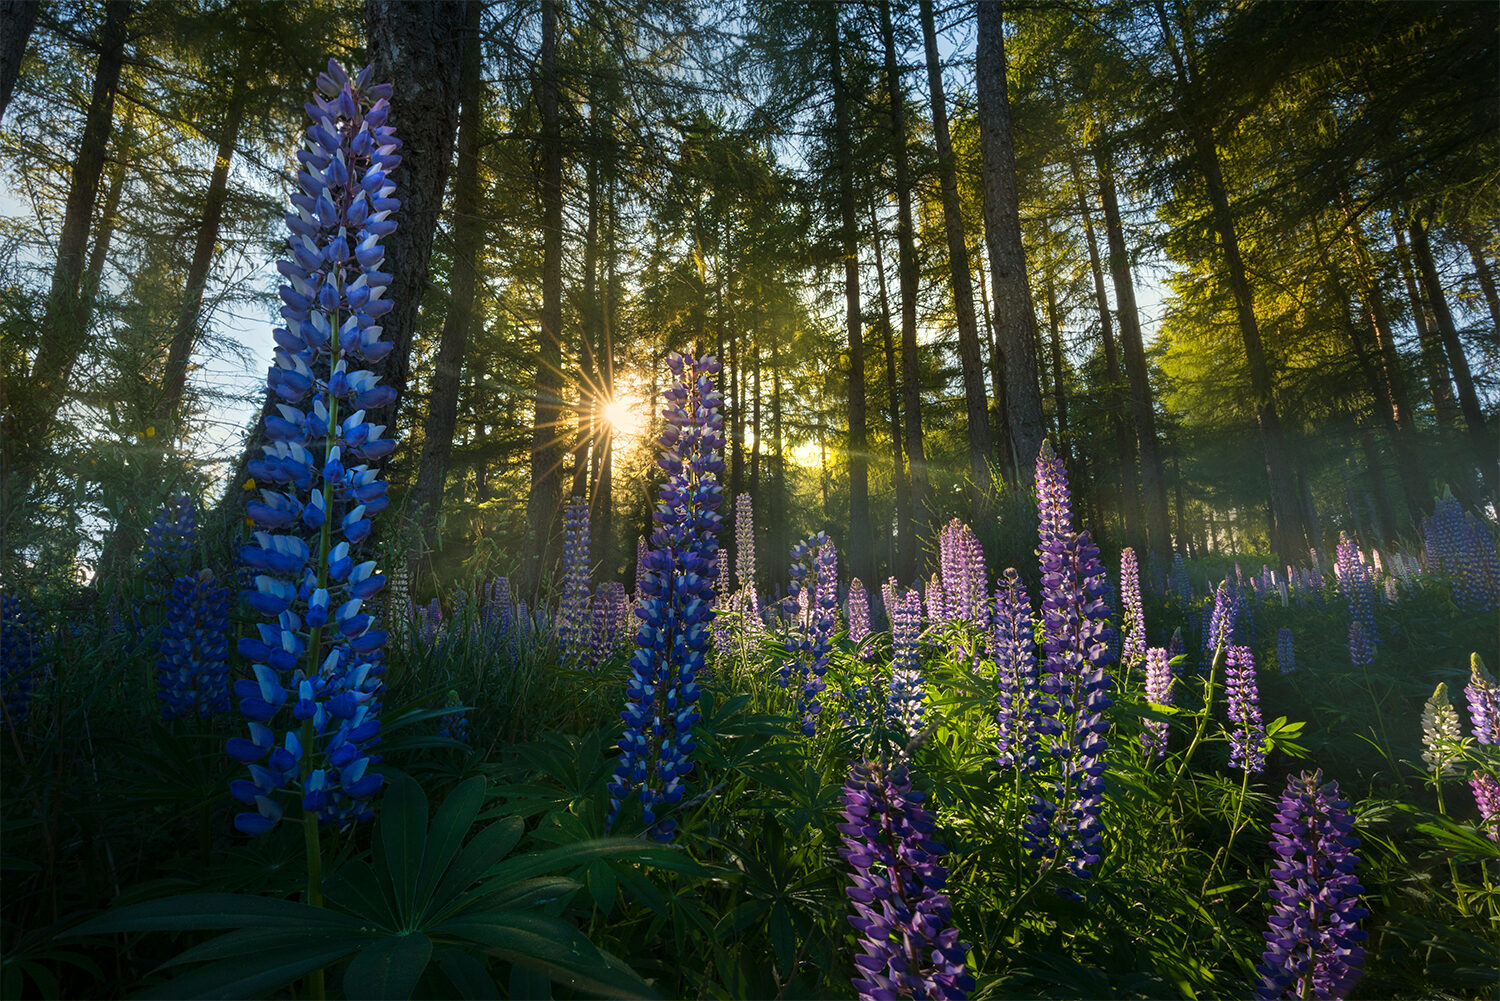 Lupin forest